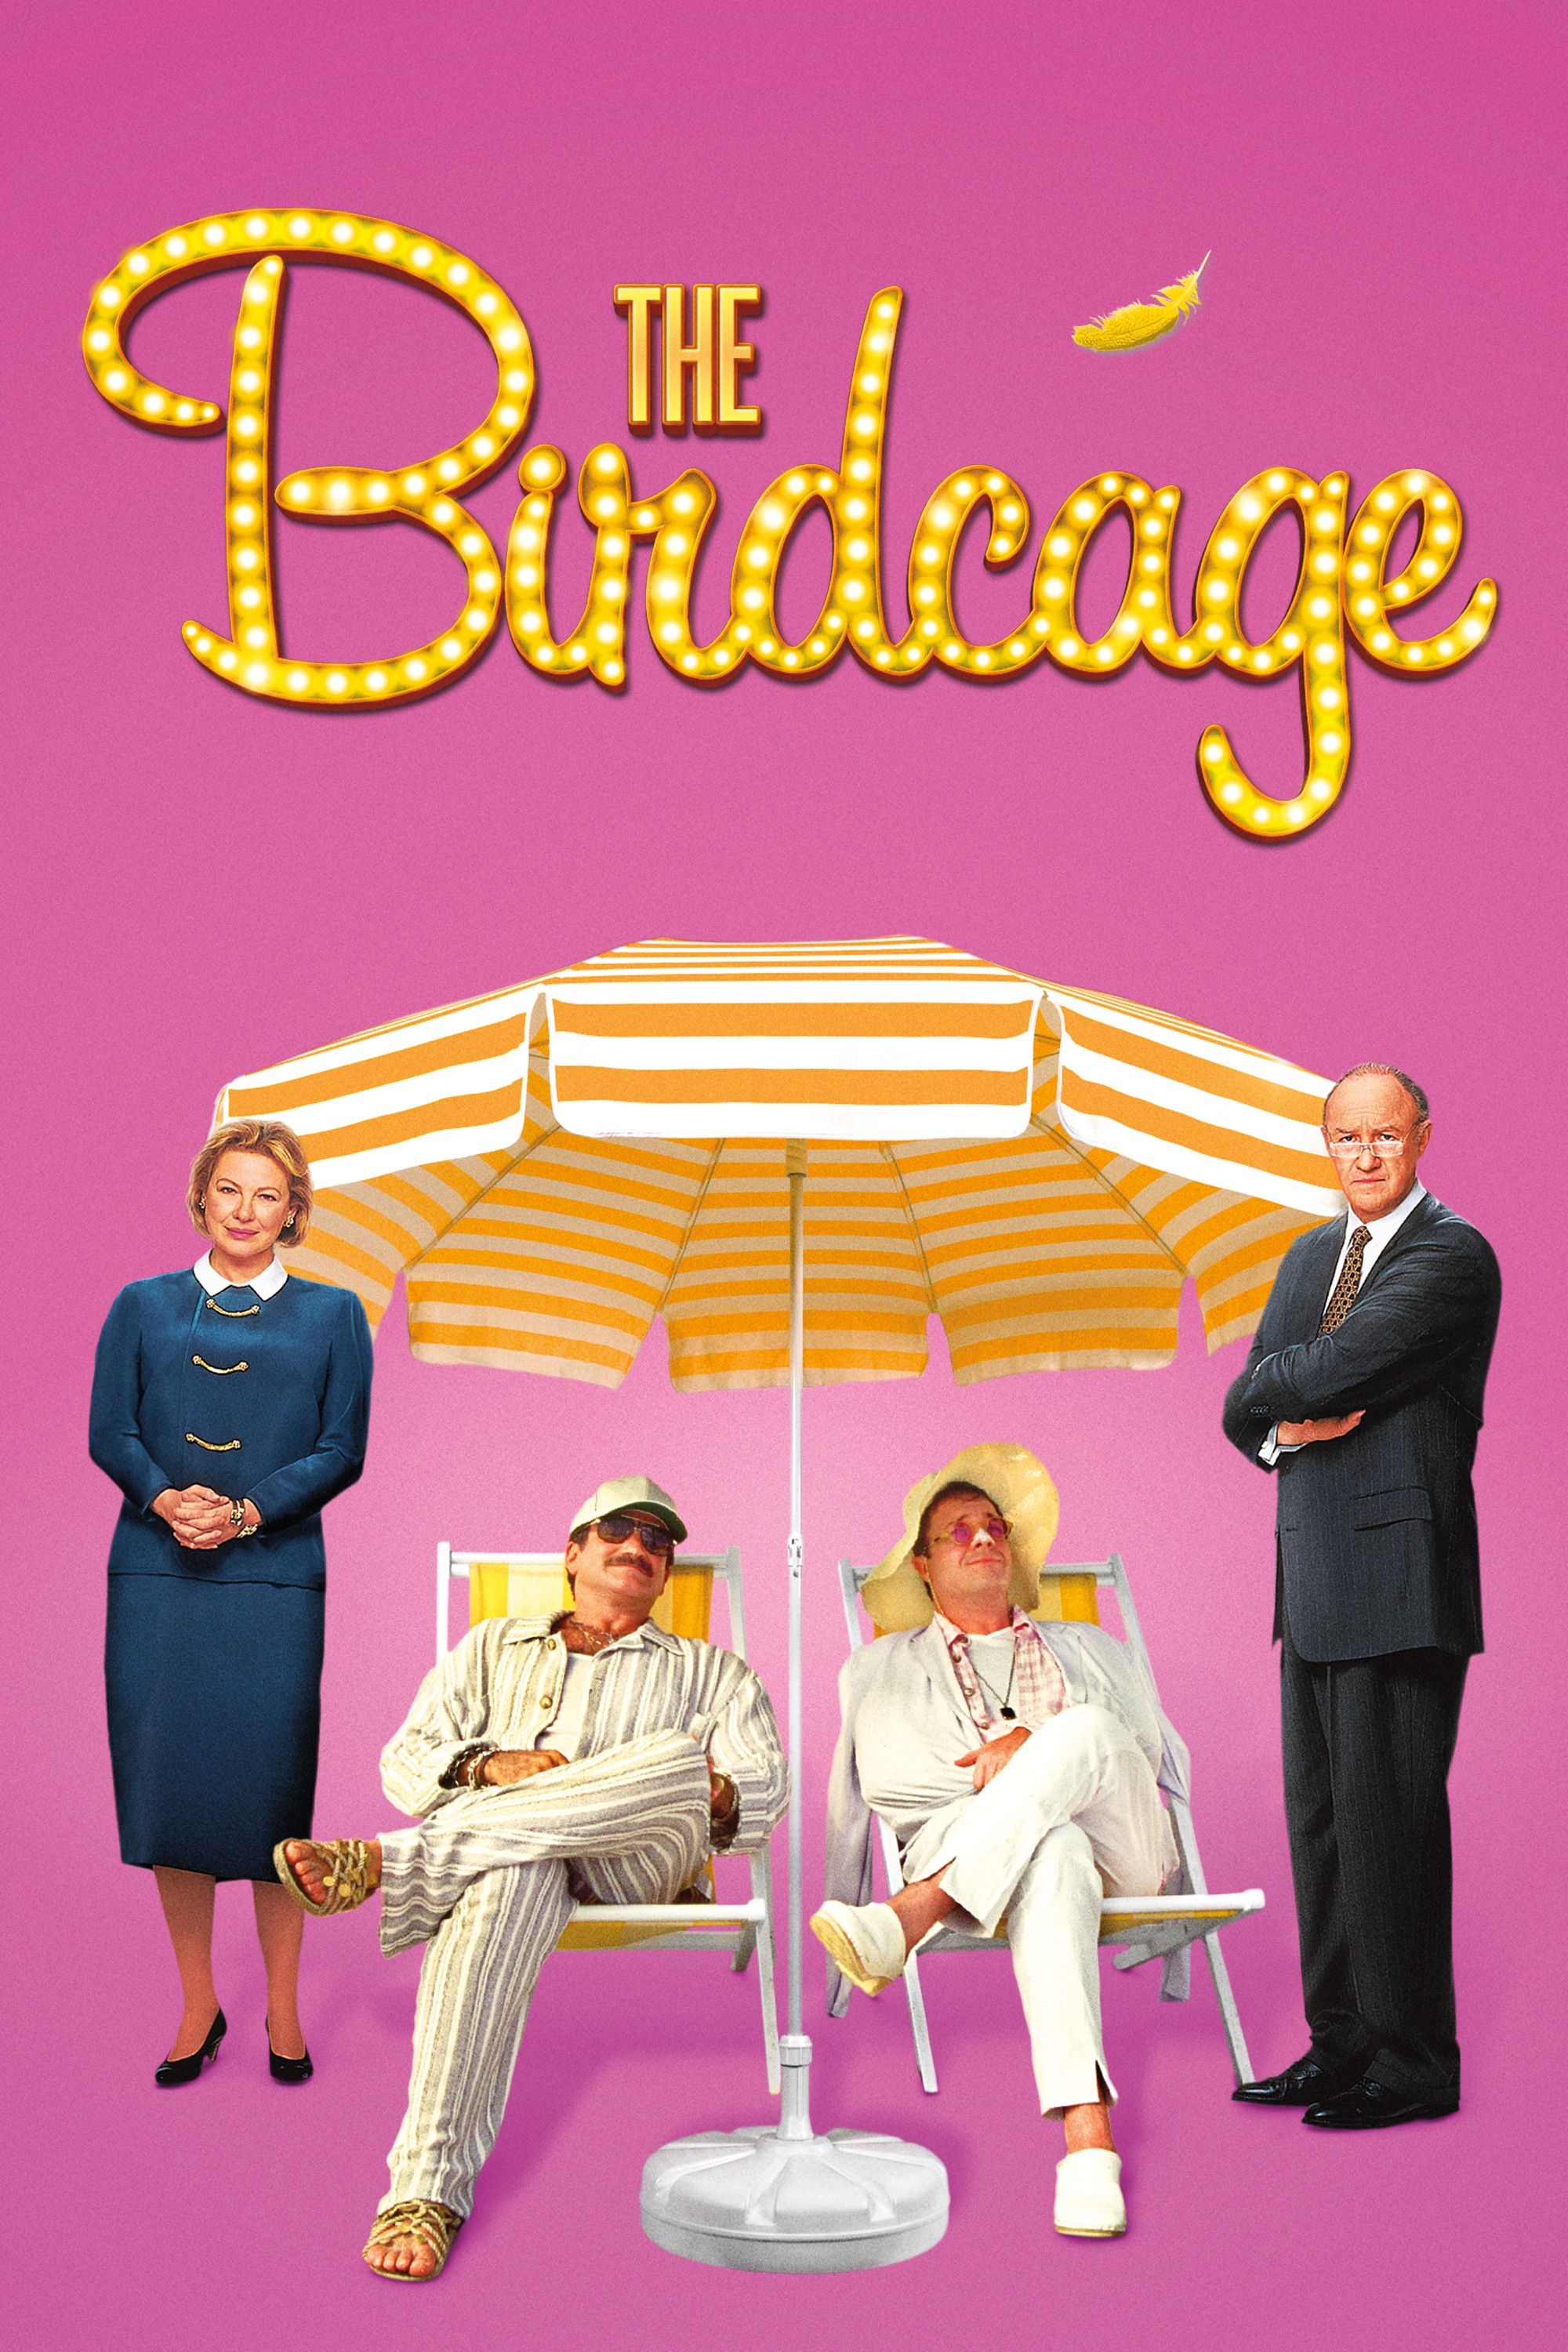 Buy the The Birdcage Movie Poster on Amazon (With images) | Robin ...